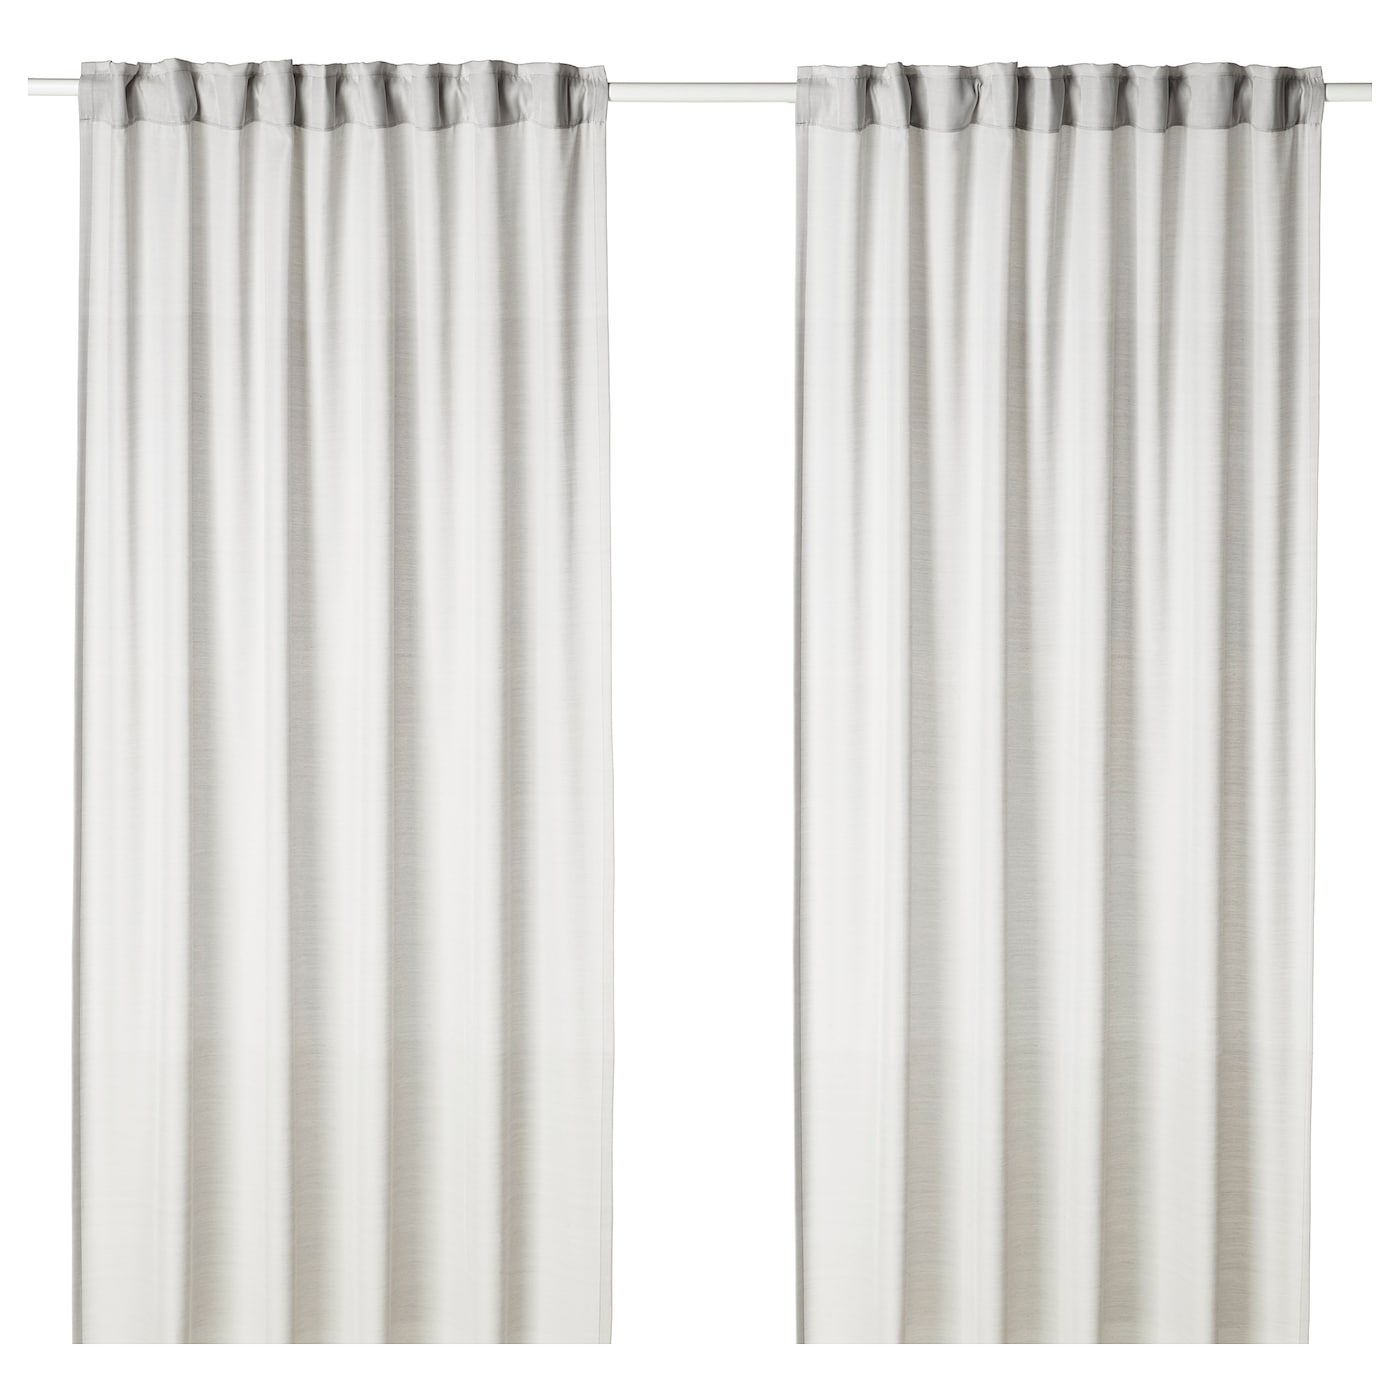 curtains inches extra com rods best rod double erpowersports curtain ideas inch long